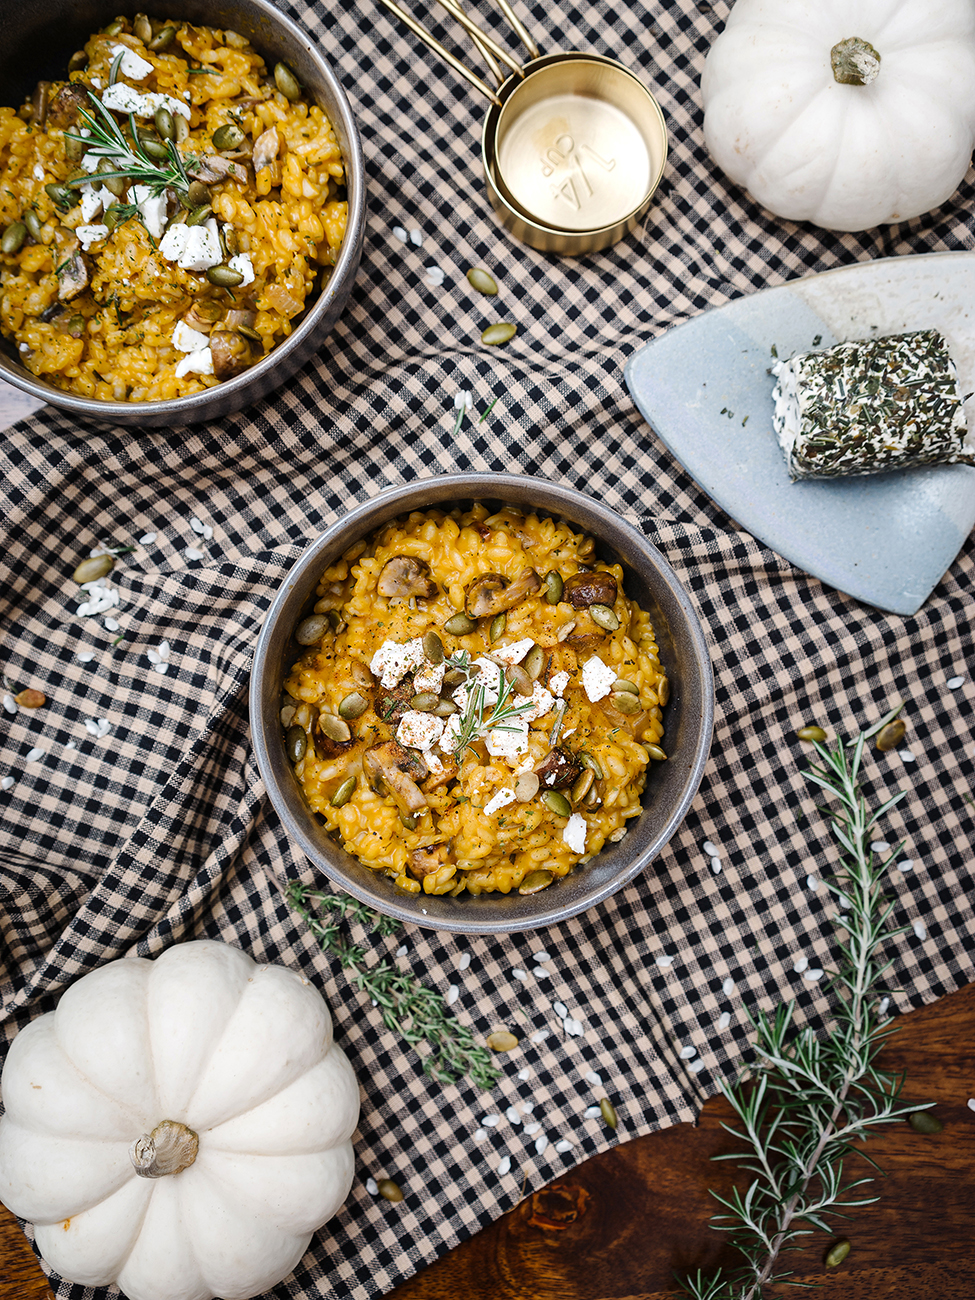 Two bowls of pumpkin risotto on a gingham tablecloth